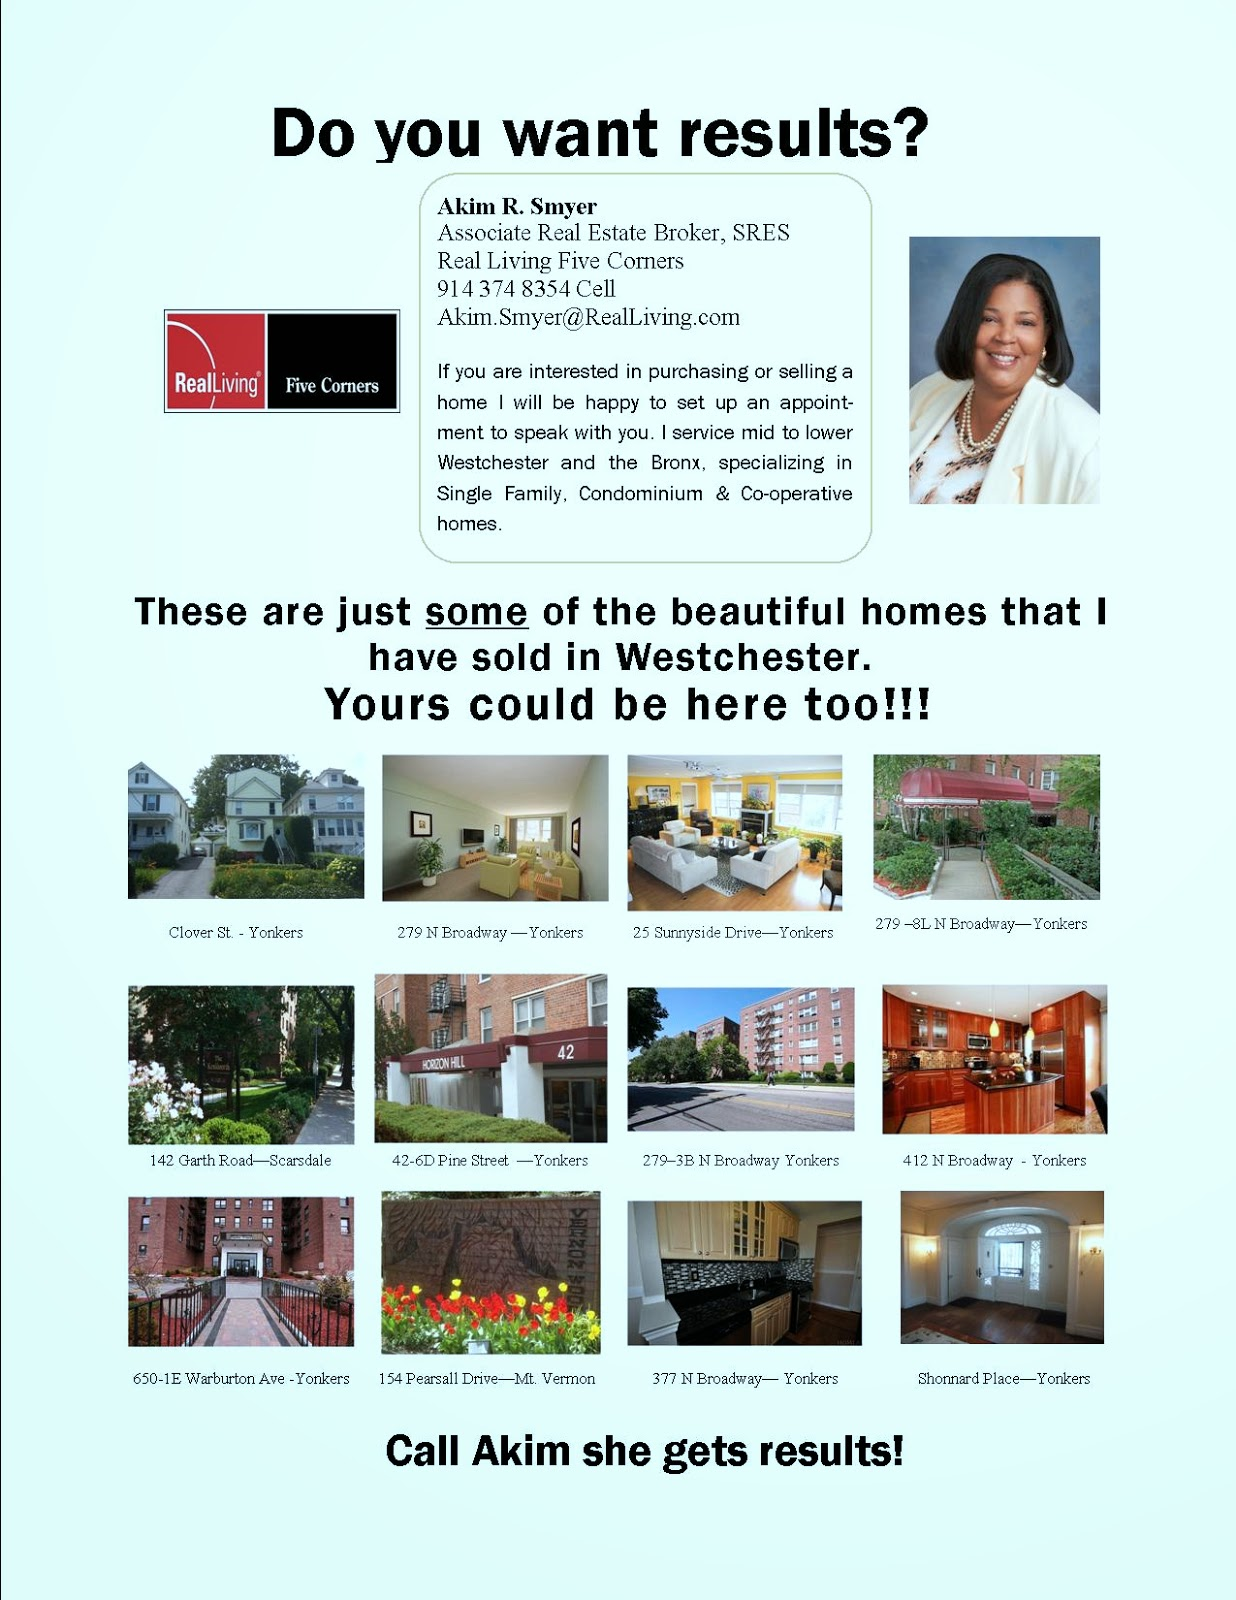 Home Buyers and Sellers get Results with Akim Smyer Realtor